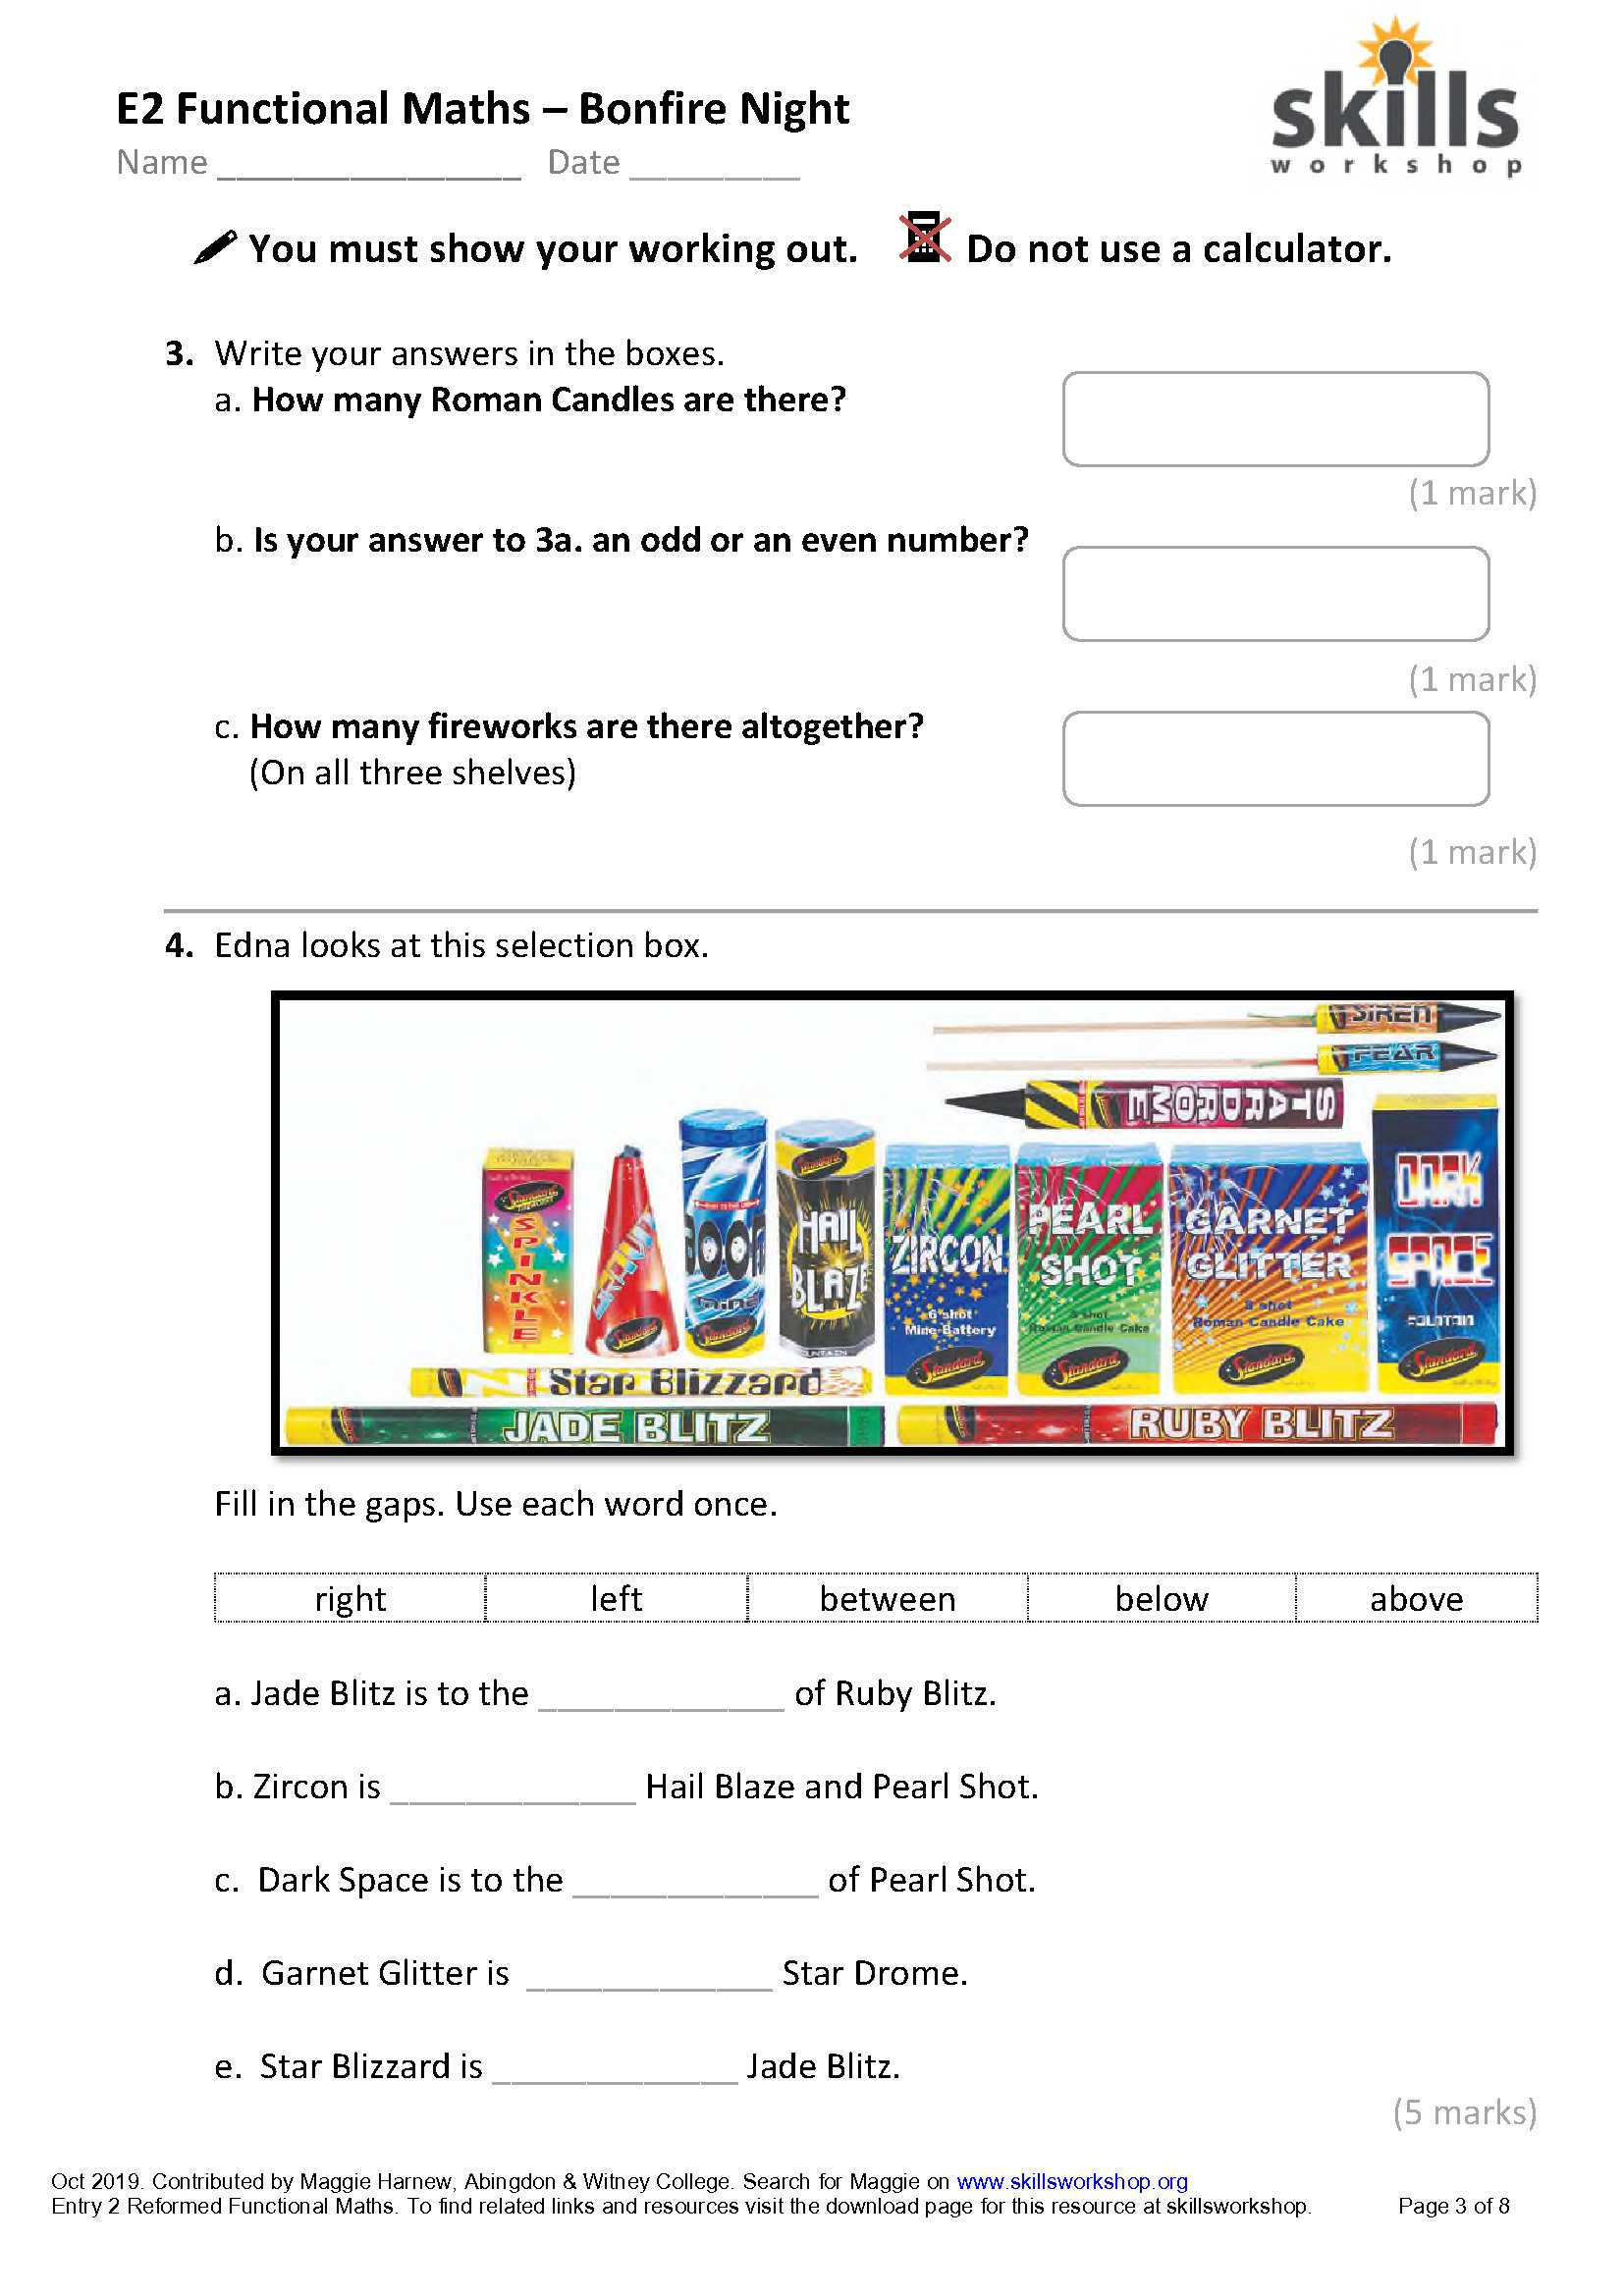 Functional Maths Worksheets Bonfire Night Maths for Entry 2 Functional Skills